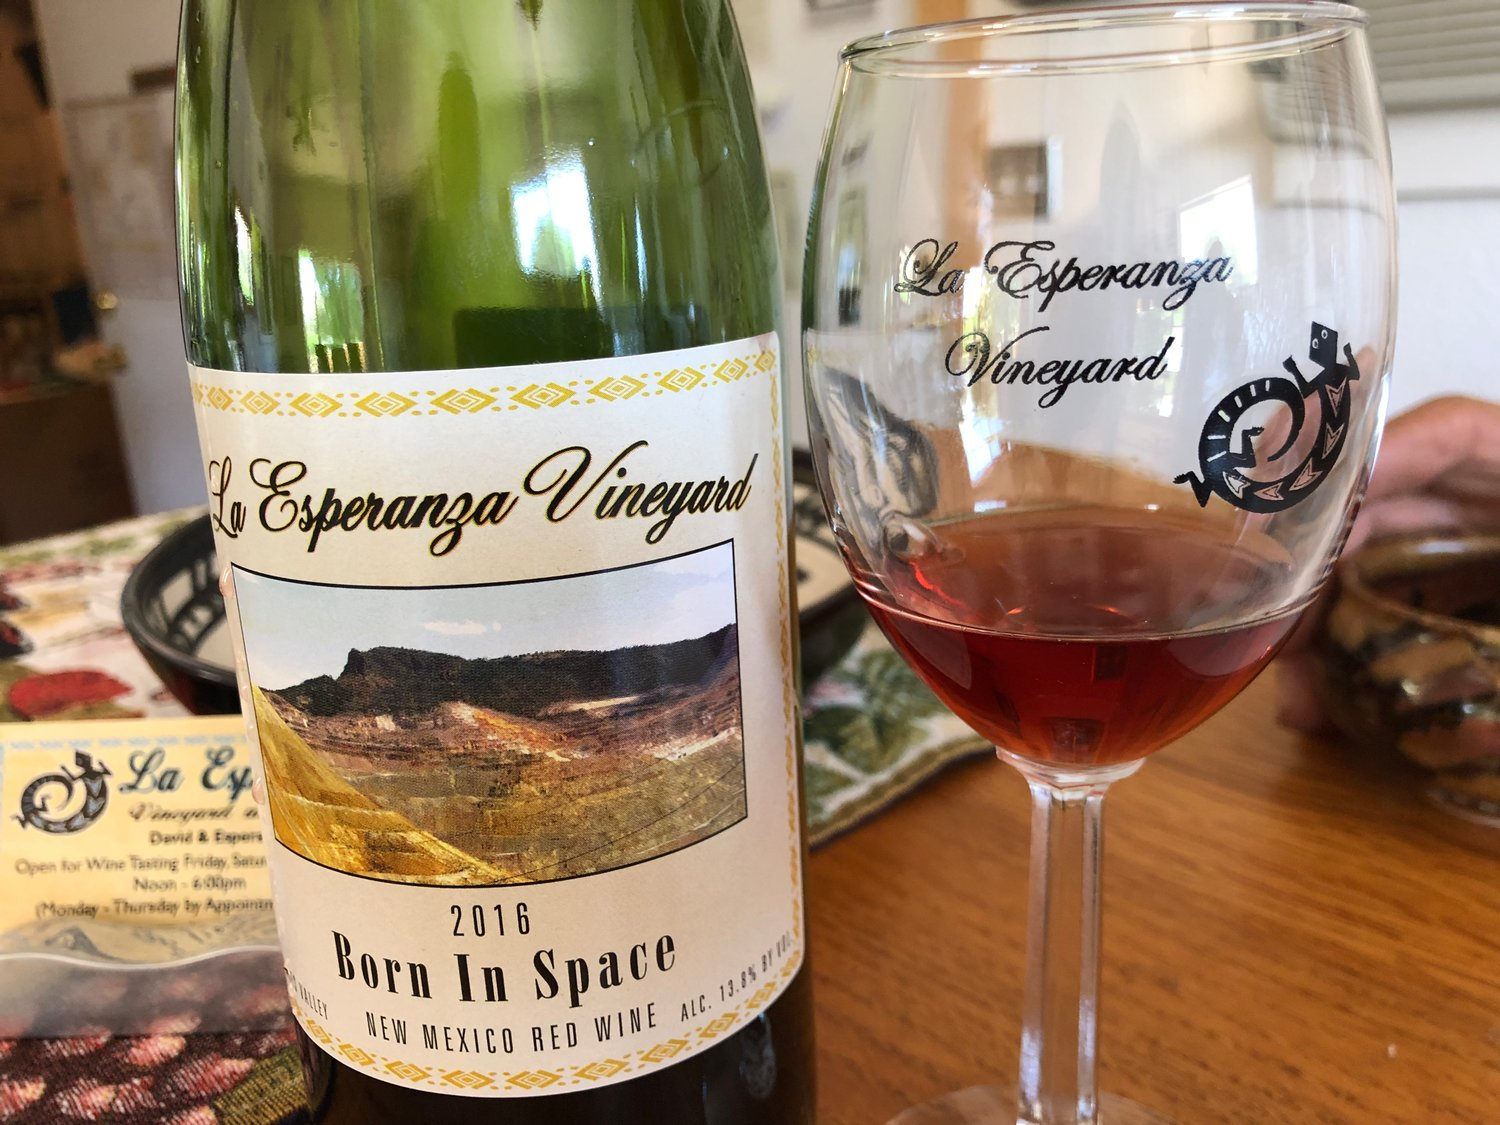 La Esperanza signature wine, blending several grape varieties, Born in Space, is named for Esperanza 